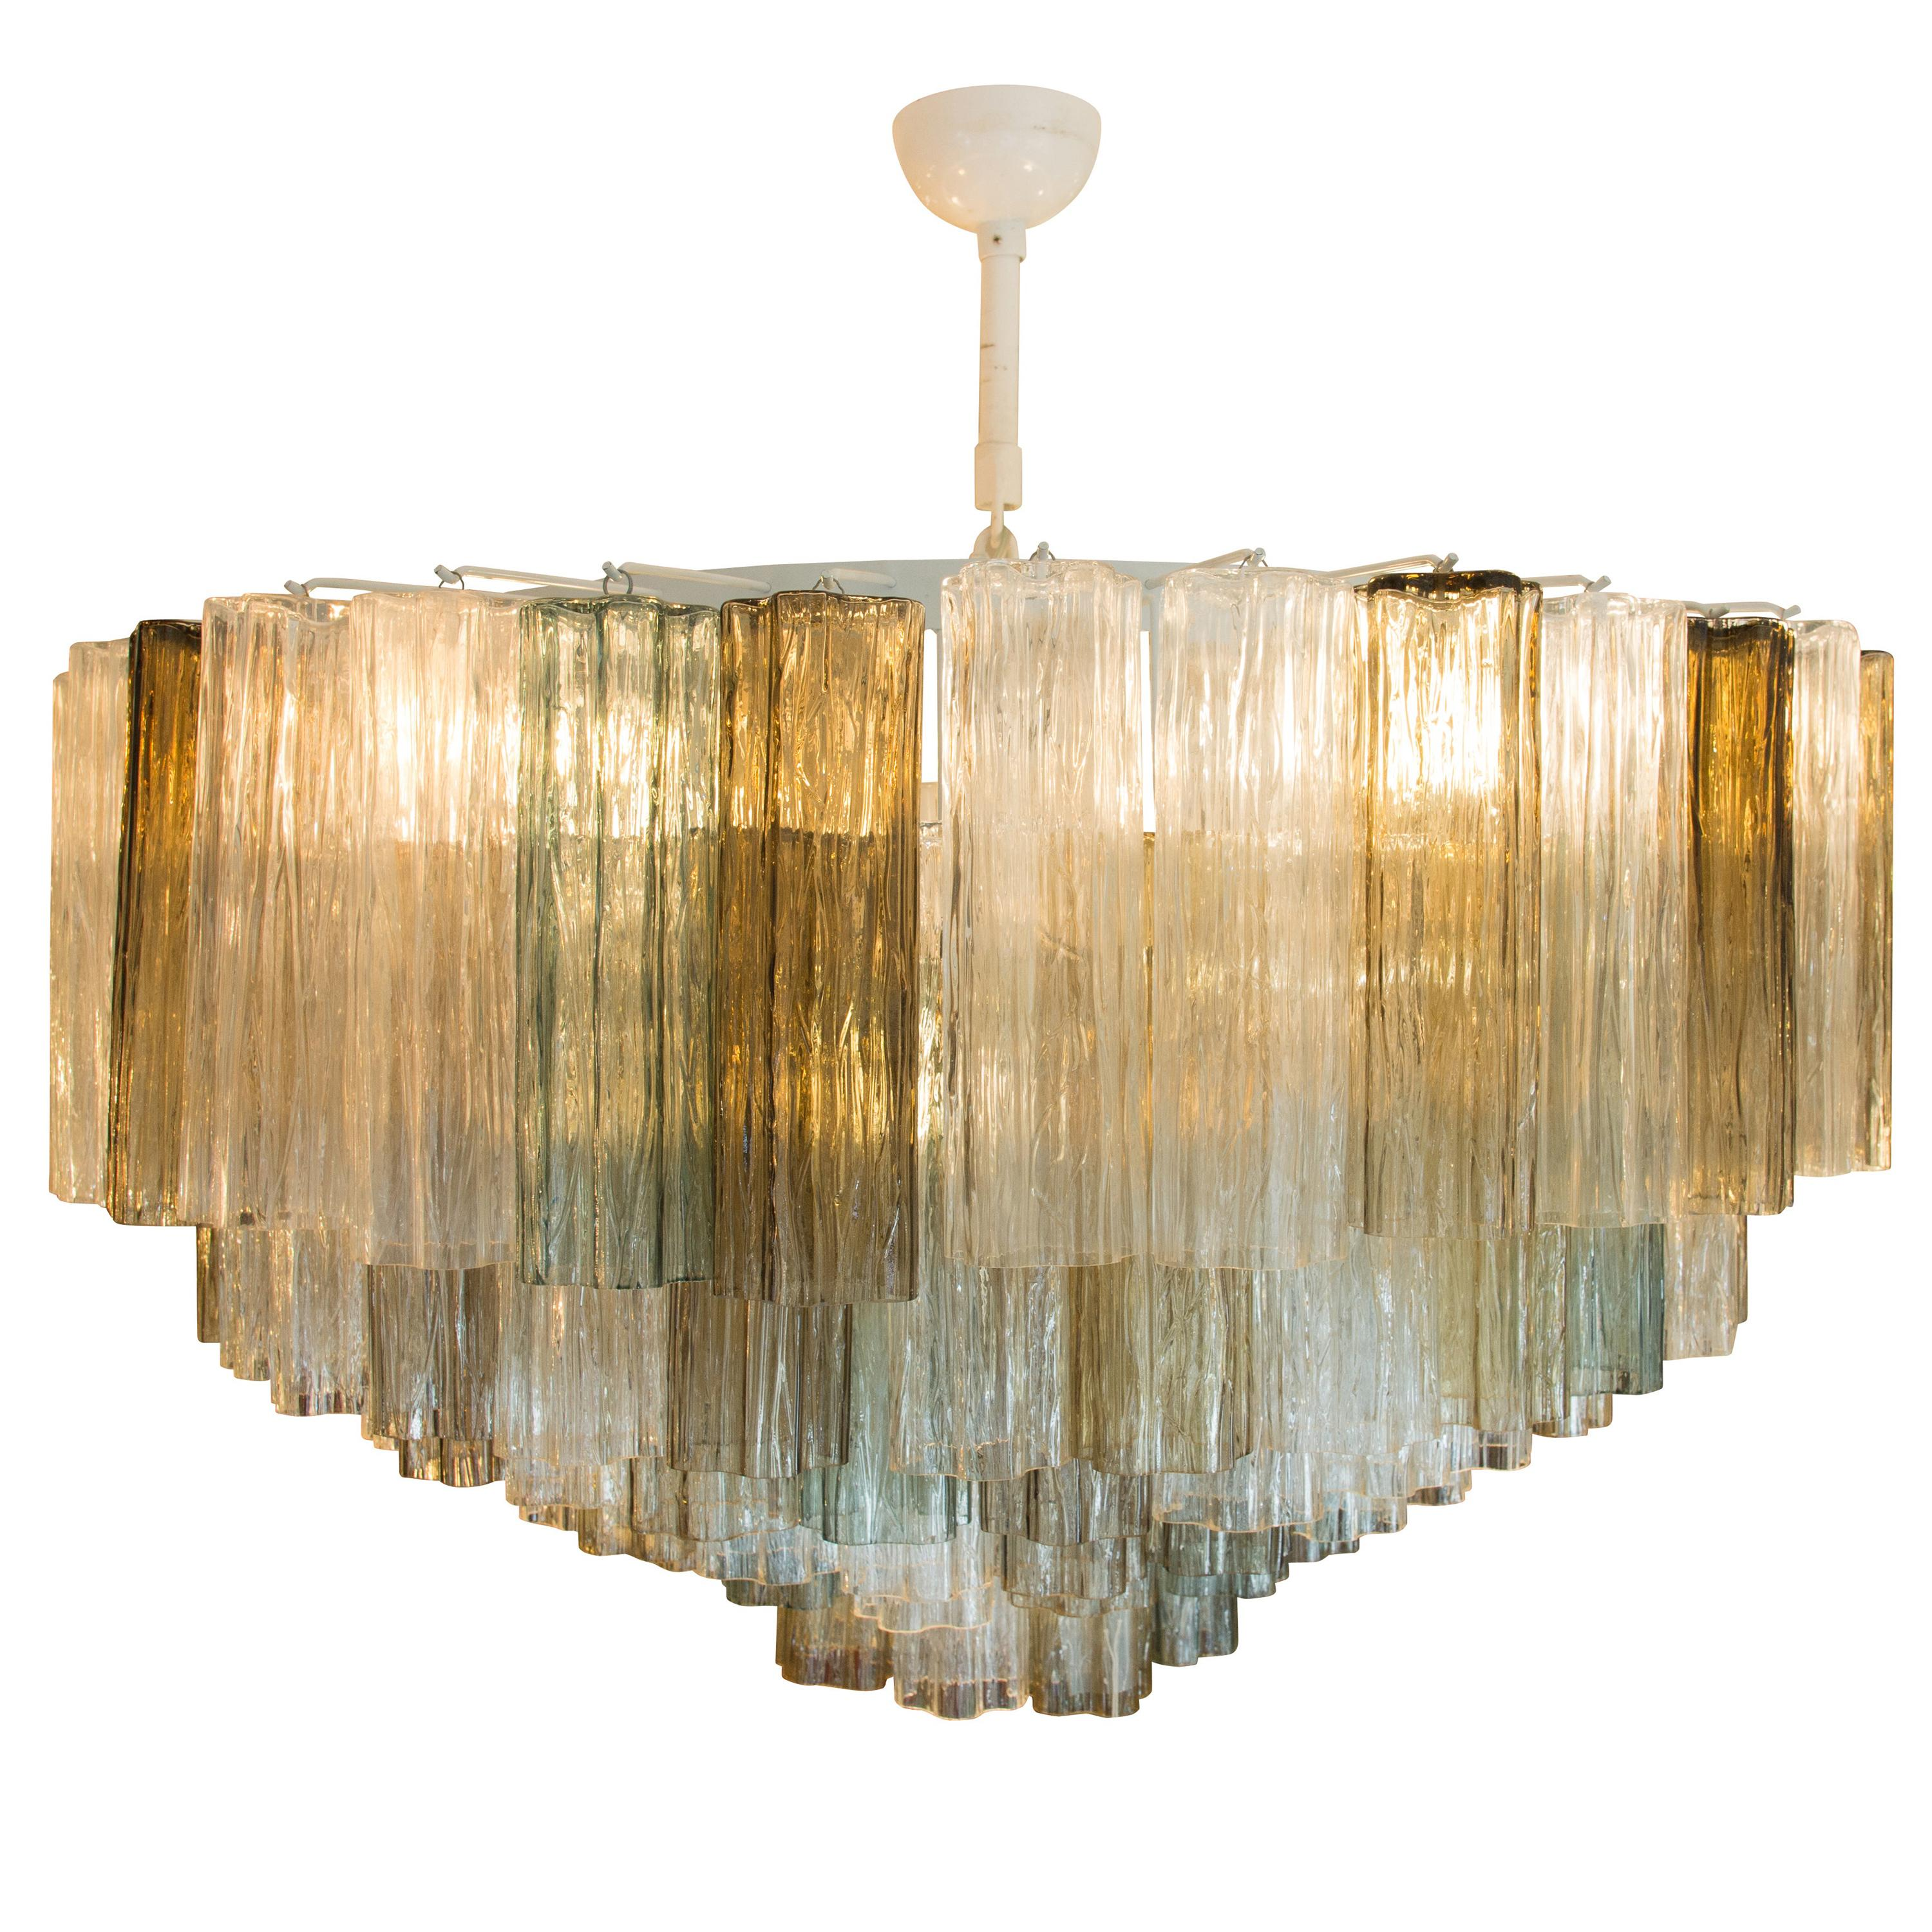 1950s Murano Tronchi Ceiling Light Clear Smoked Amber Blown Glass Components